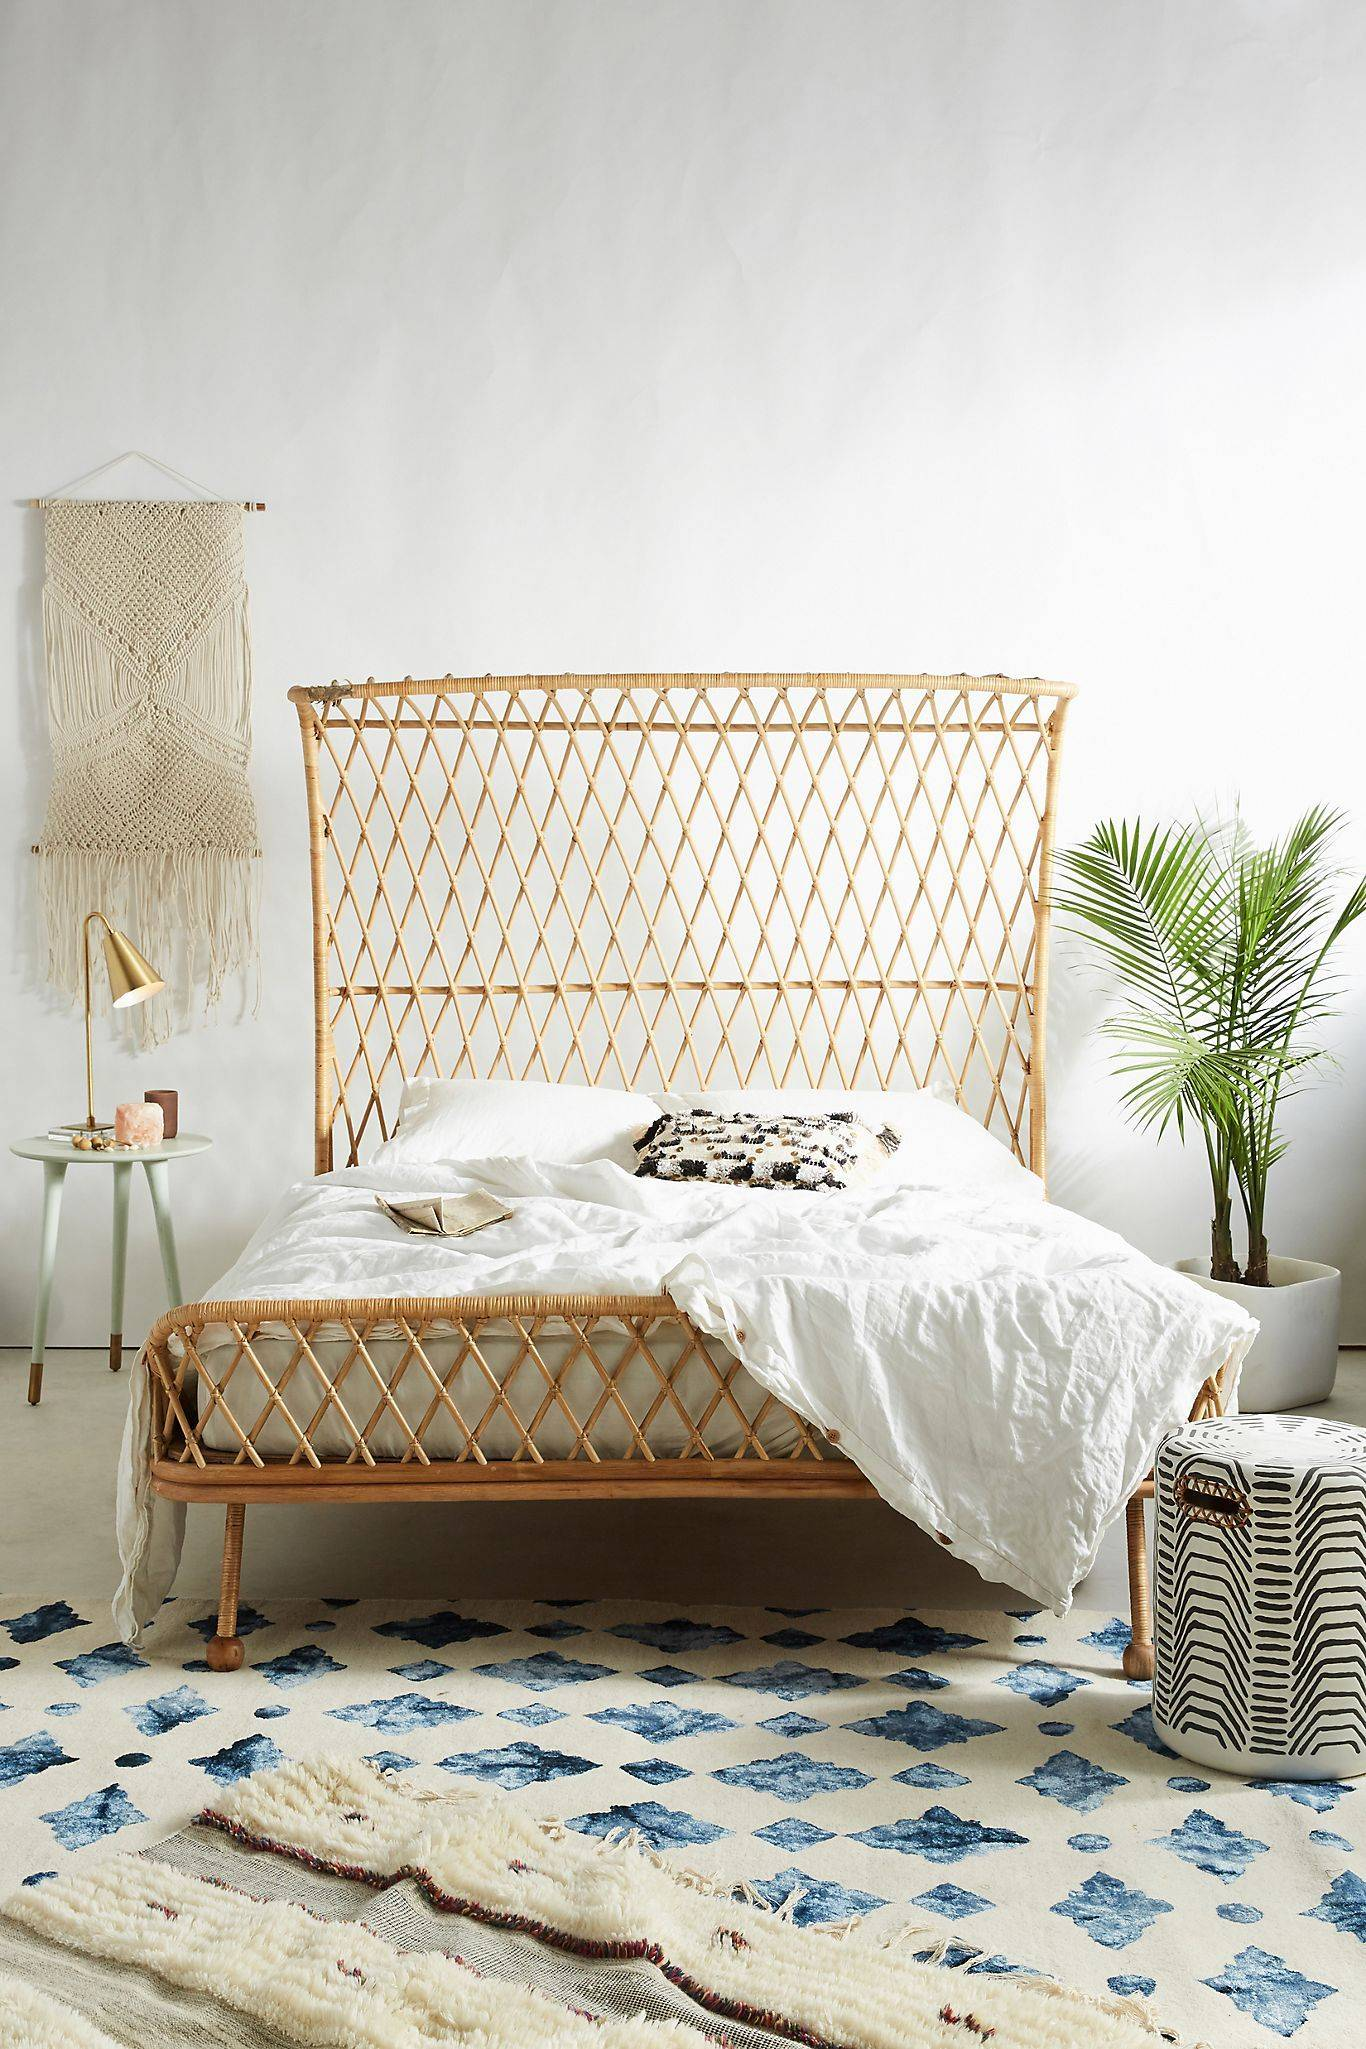 Rattan bed with potted plant on the side